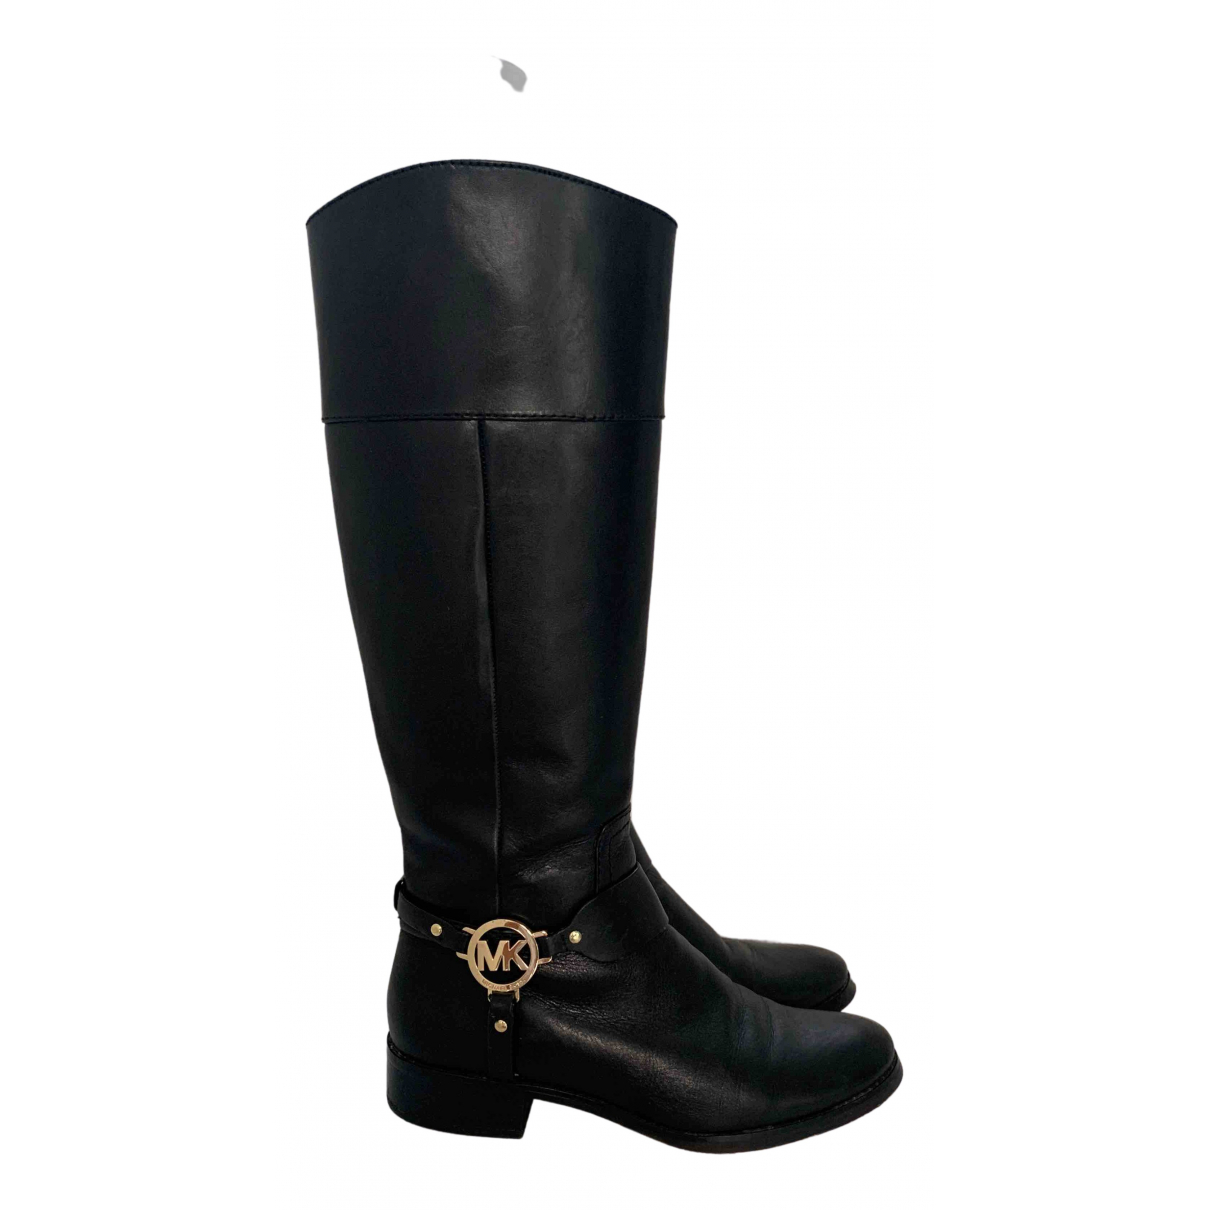 Michael Kors \N Black Leather Boots for Women 9 US